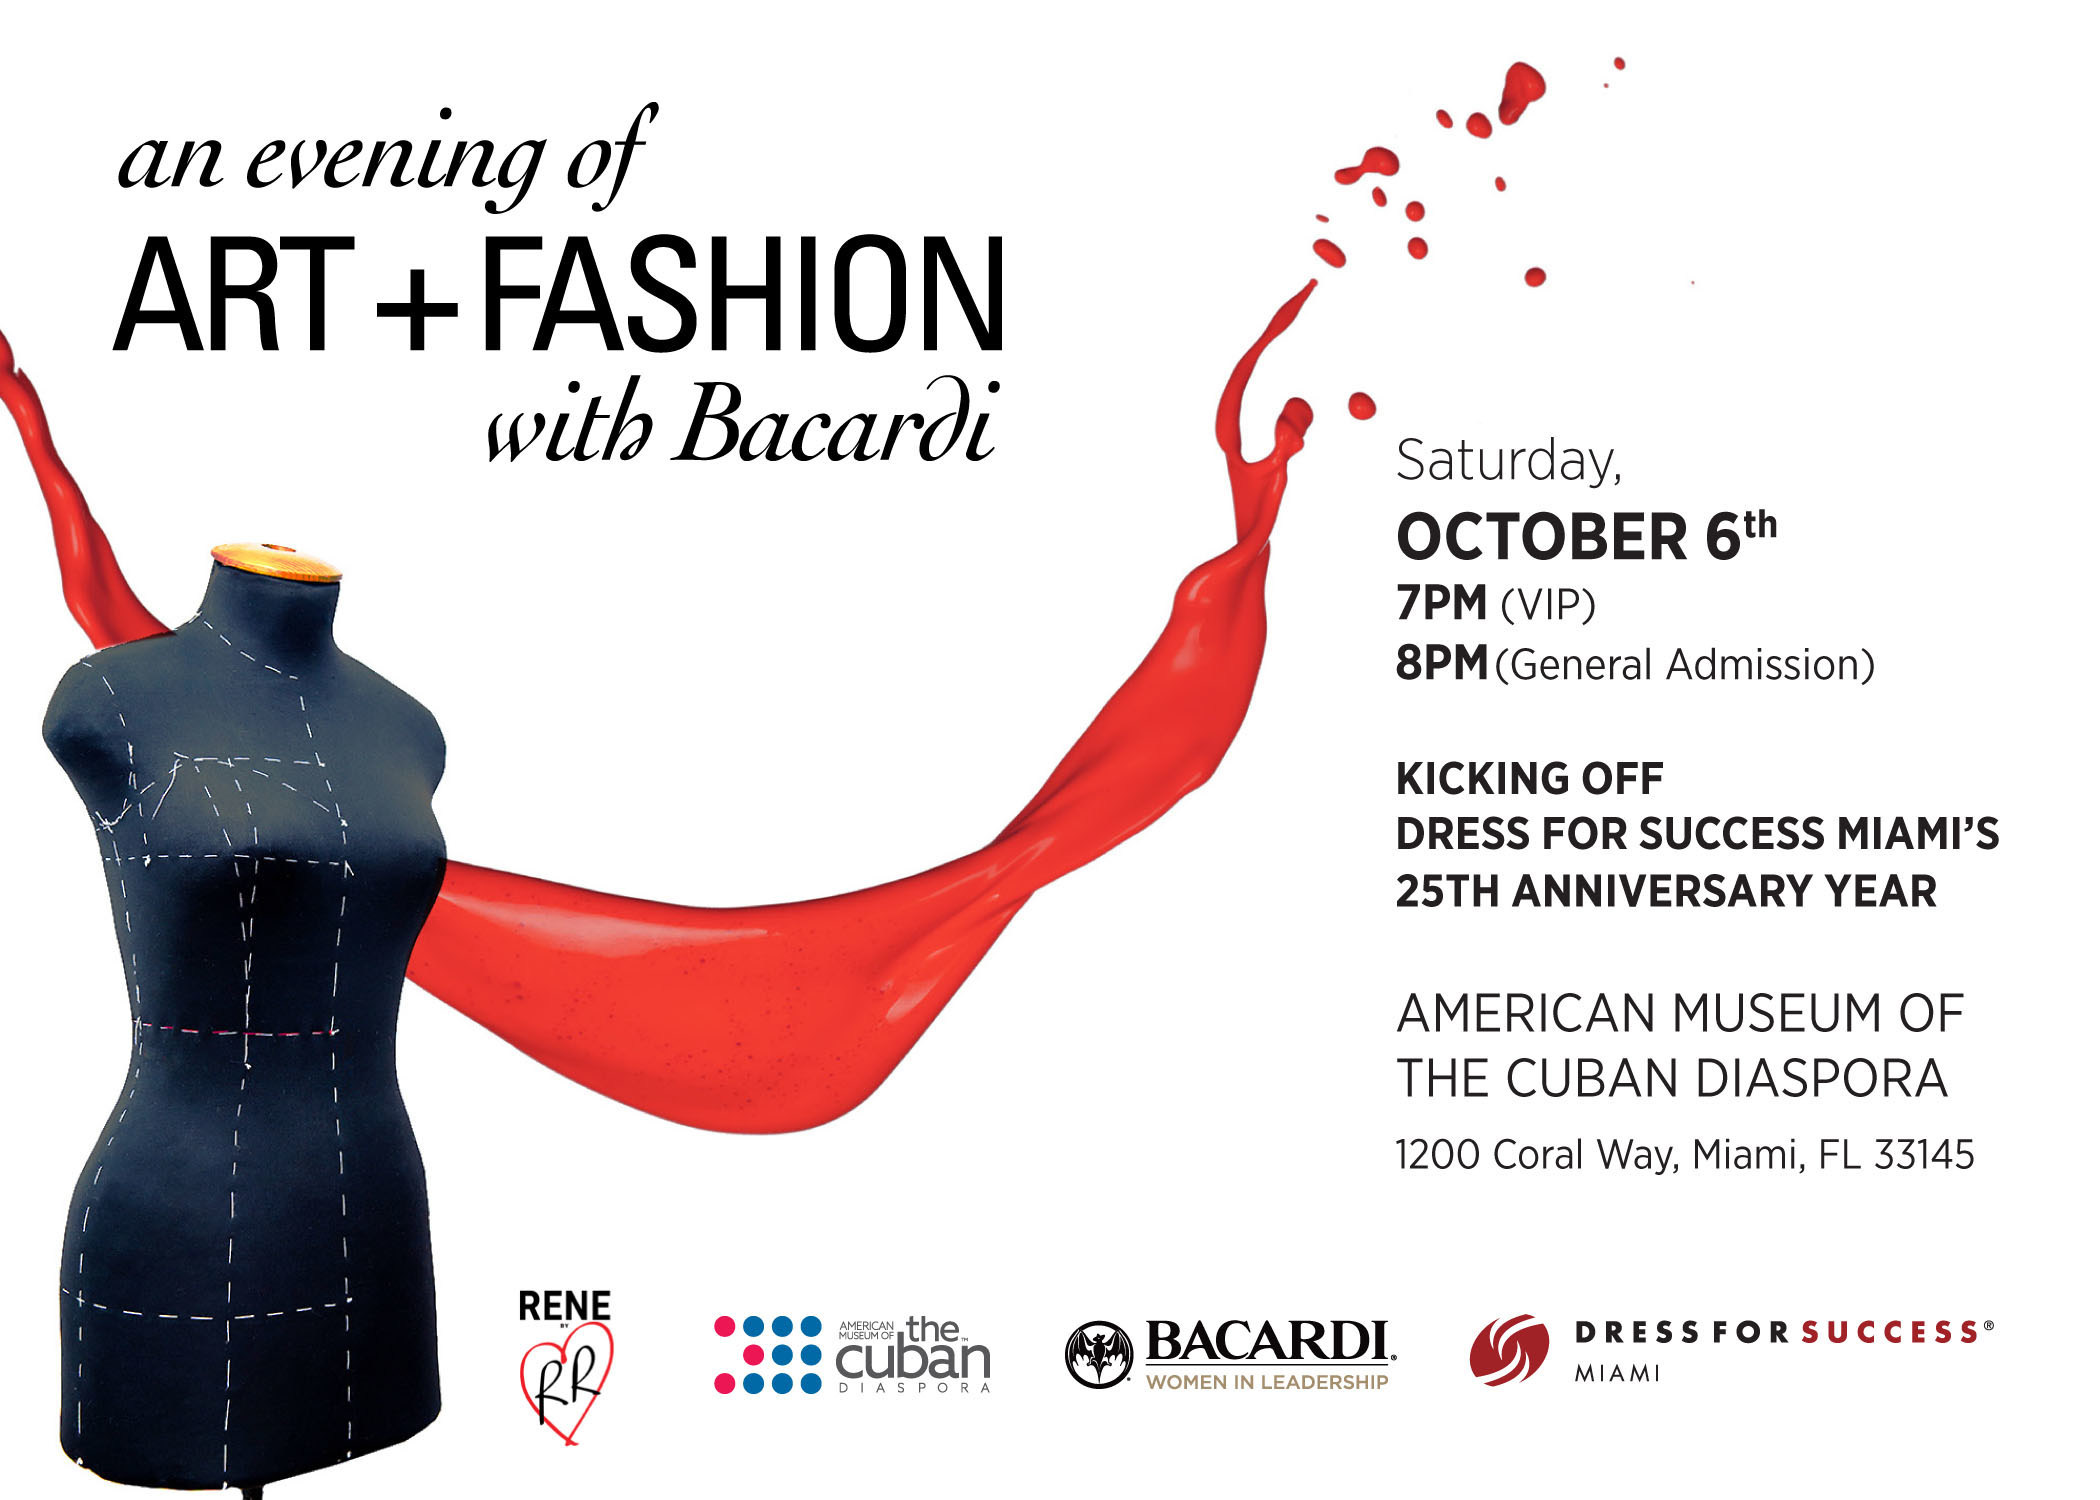 Tickets for the Bacardi Evening of Art & Fashion are $75 per person for general admission and $199 per person for VIP. VIP tickets include access one hour prior to doors opening, Rene by RR fashion show, and the private cognac, whisky and cigar lounge. Must be 21+ years of age to attend. Net proceeds from the event will benefit Dress for Success Miami. Tickets can be purchased via: https://noaf.eventbrite.com